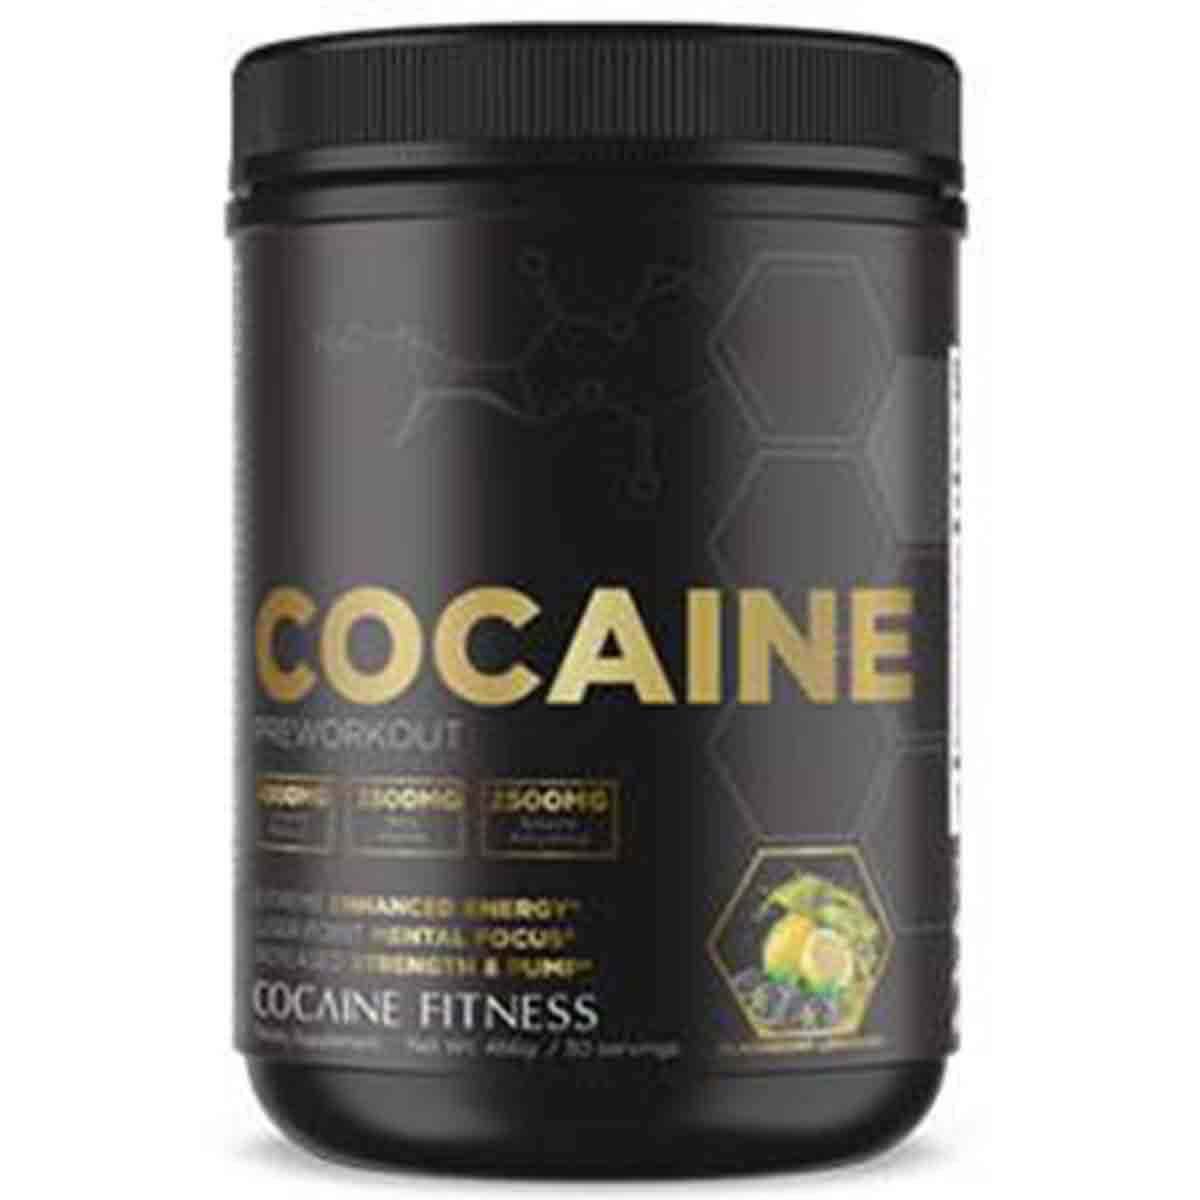 Cocaine Pre-Workout